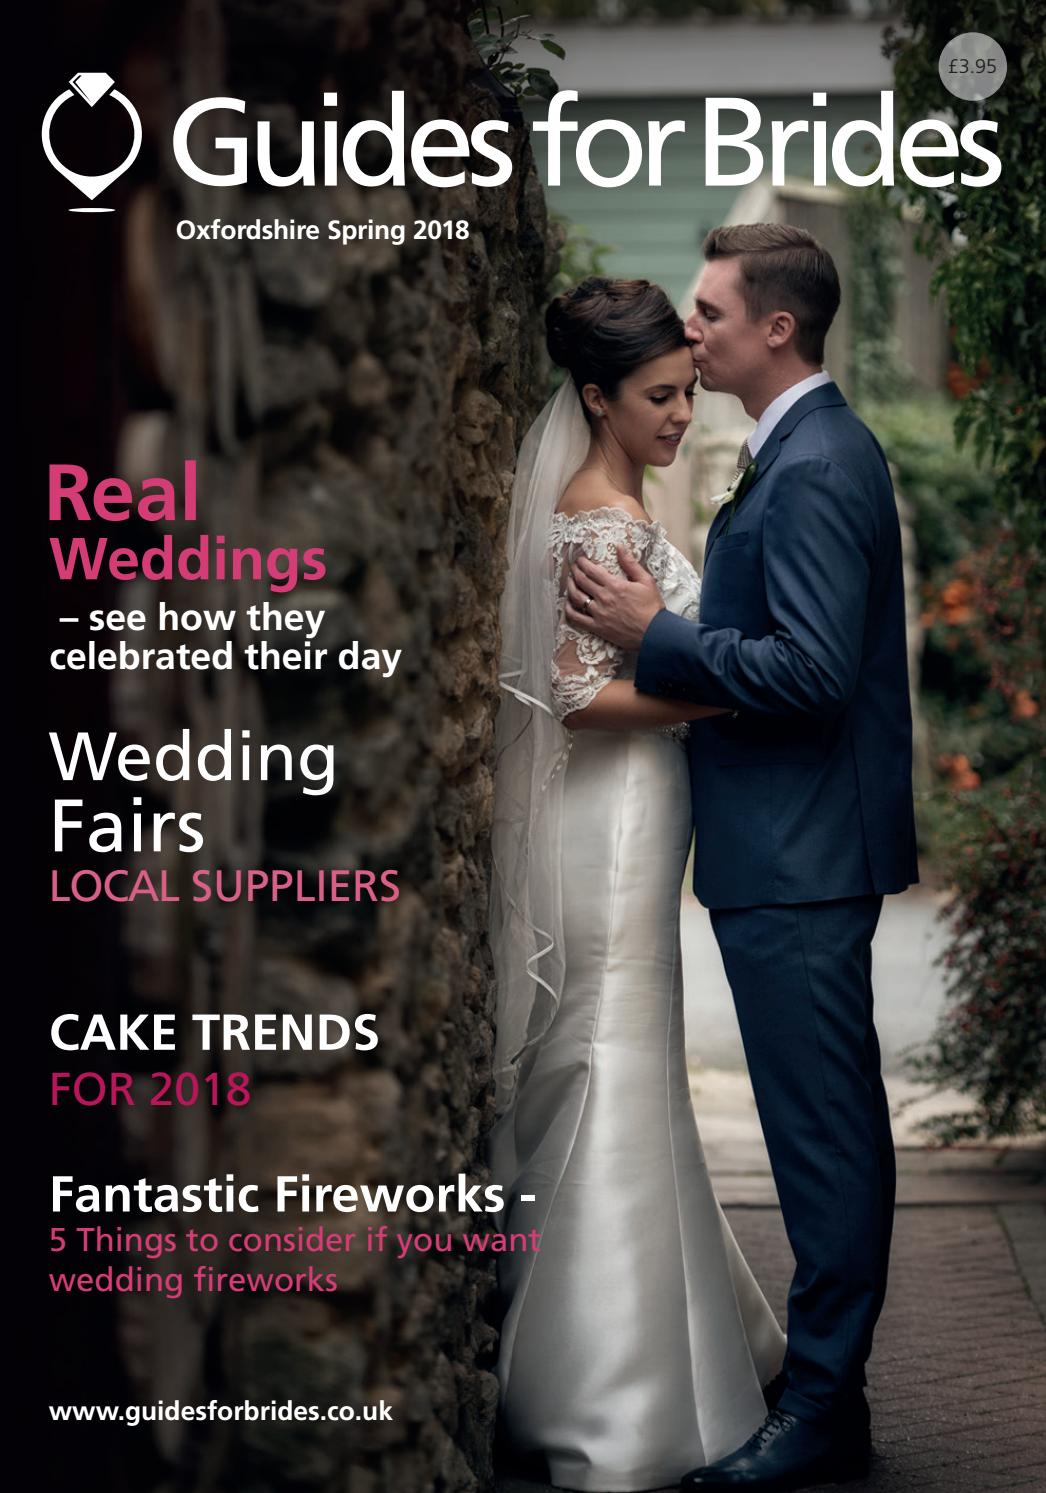 Wedding script for toastmaster - the key to a bright celebration